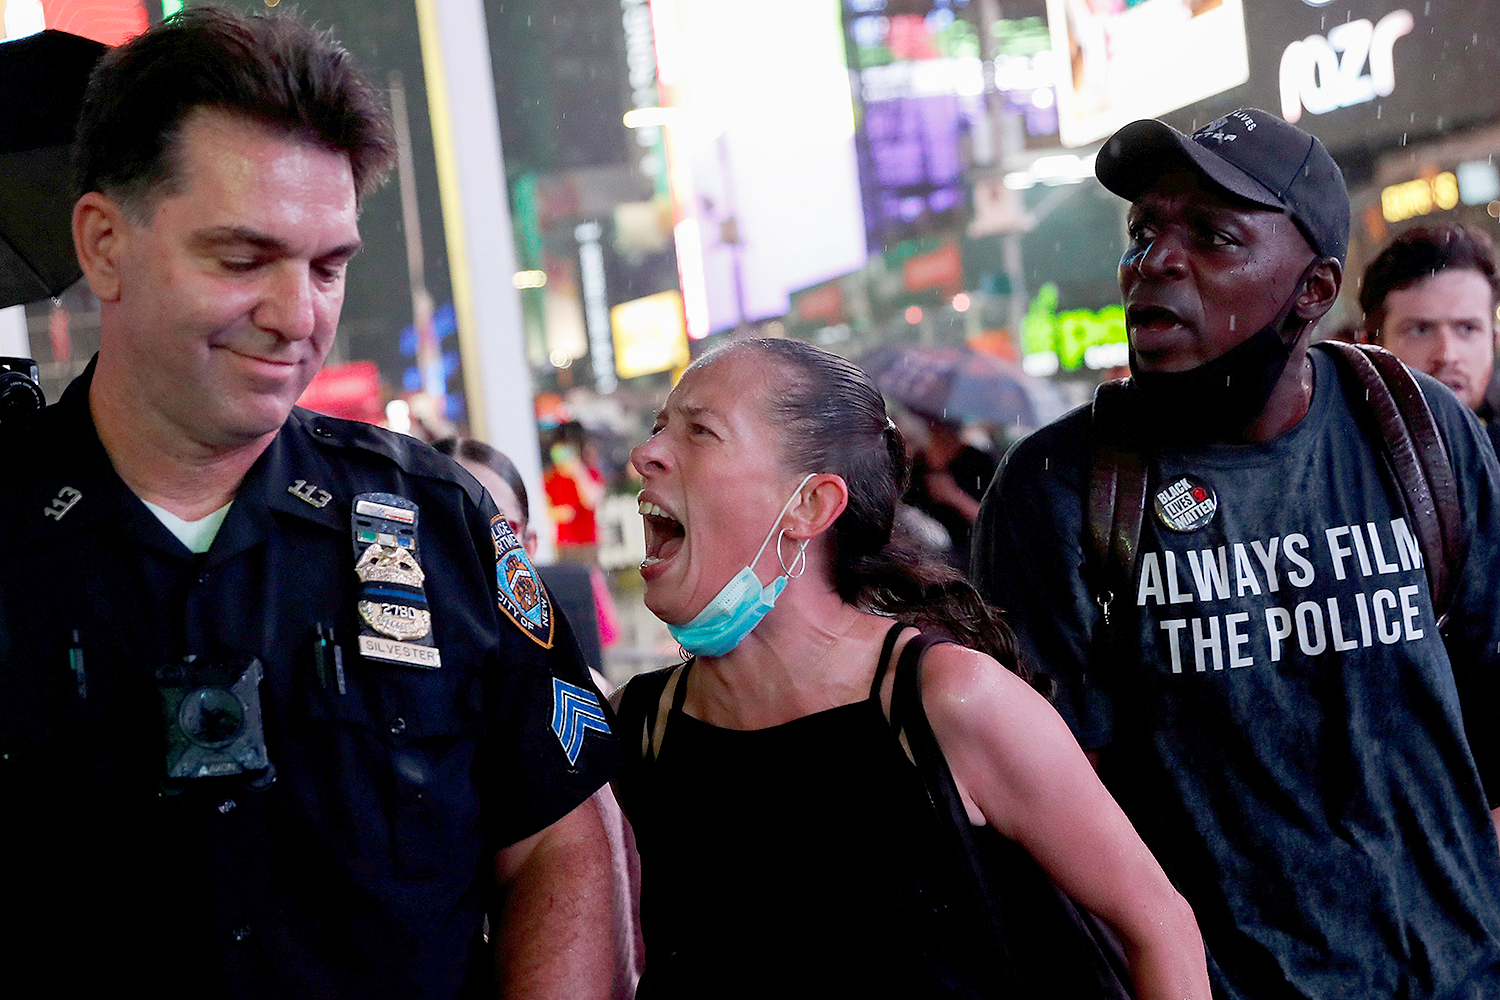 A woman argues with a police officer during a protest in New York City on Sept. 3 following the death of the Daniel Prude, a Black man who was killed in Rochester after police put a spit hood over his head during an arrest in March. Shannon Stapleton/REUTERS